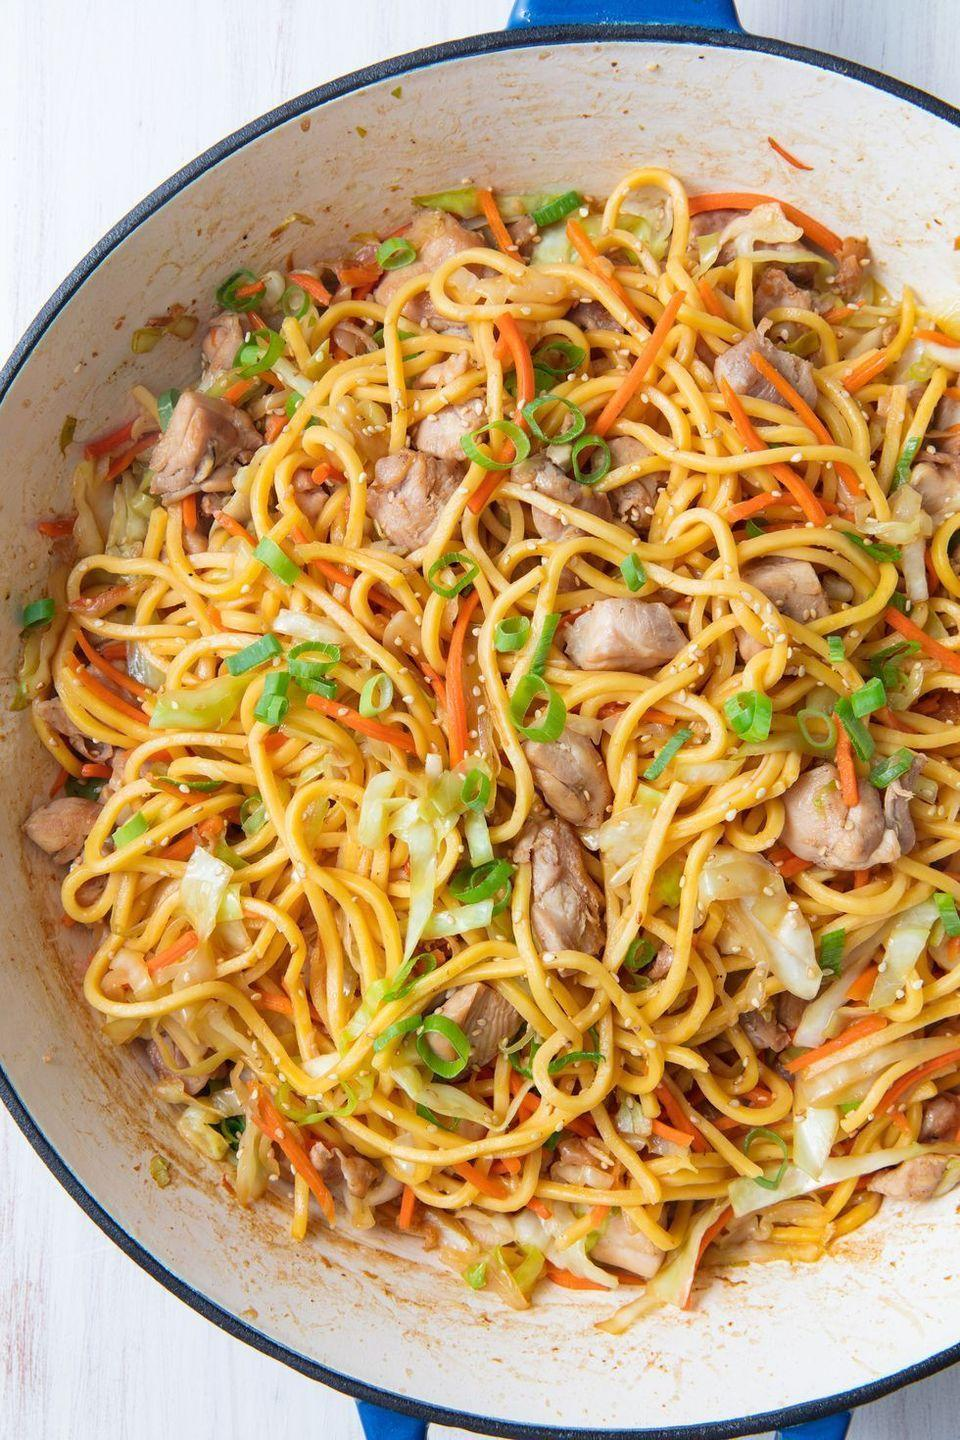 "<p>Chow mein is our go-to for all types of meals, from an <a href=""https://www.delish.com/uk/easy-dinner-ideas/"" rel=""nofollow noopener"" target=""_blank"" data-ylk=""slk:easy dinner"" class=""link rapid-noclick-resp"">easy dinner</a> to a serious <a href=""https://www.delish.com/uk/cocktails-drinks/a30873516/hangover-cures/"" rel=""nofollow noopener"" target=""_blank"" data-ylk=""slk:hangover"" class=""link rapid-noclick-resp"">hangover</a>. We love the kick this recipe gets from fresh ginger, but if you're not a fan, skip it.</p><p>Get the <a href=""https://www.delish.com/uk/cooking/recipes/a30959950/chicken-chow-mein-recipe/"" rel=""nofollow noopener"" target=""_blank"" data-ylk=""slk:Chicken Chow Mein"" class=""link rapid-noclick-resp"">Chicken Chow Mein</a> recipe. </p>"